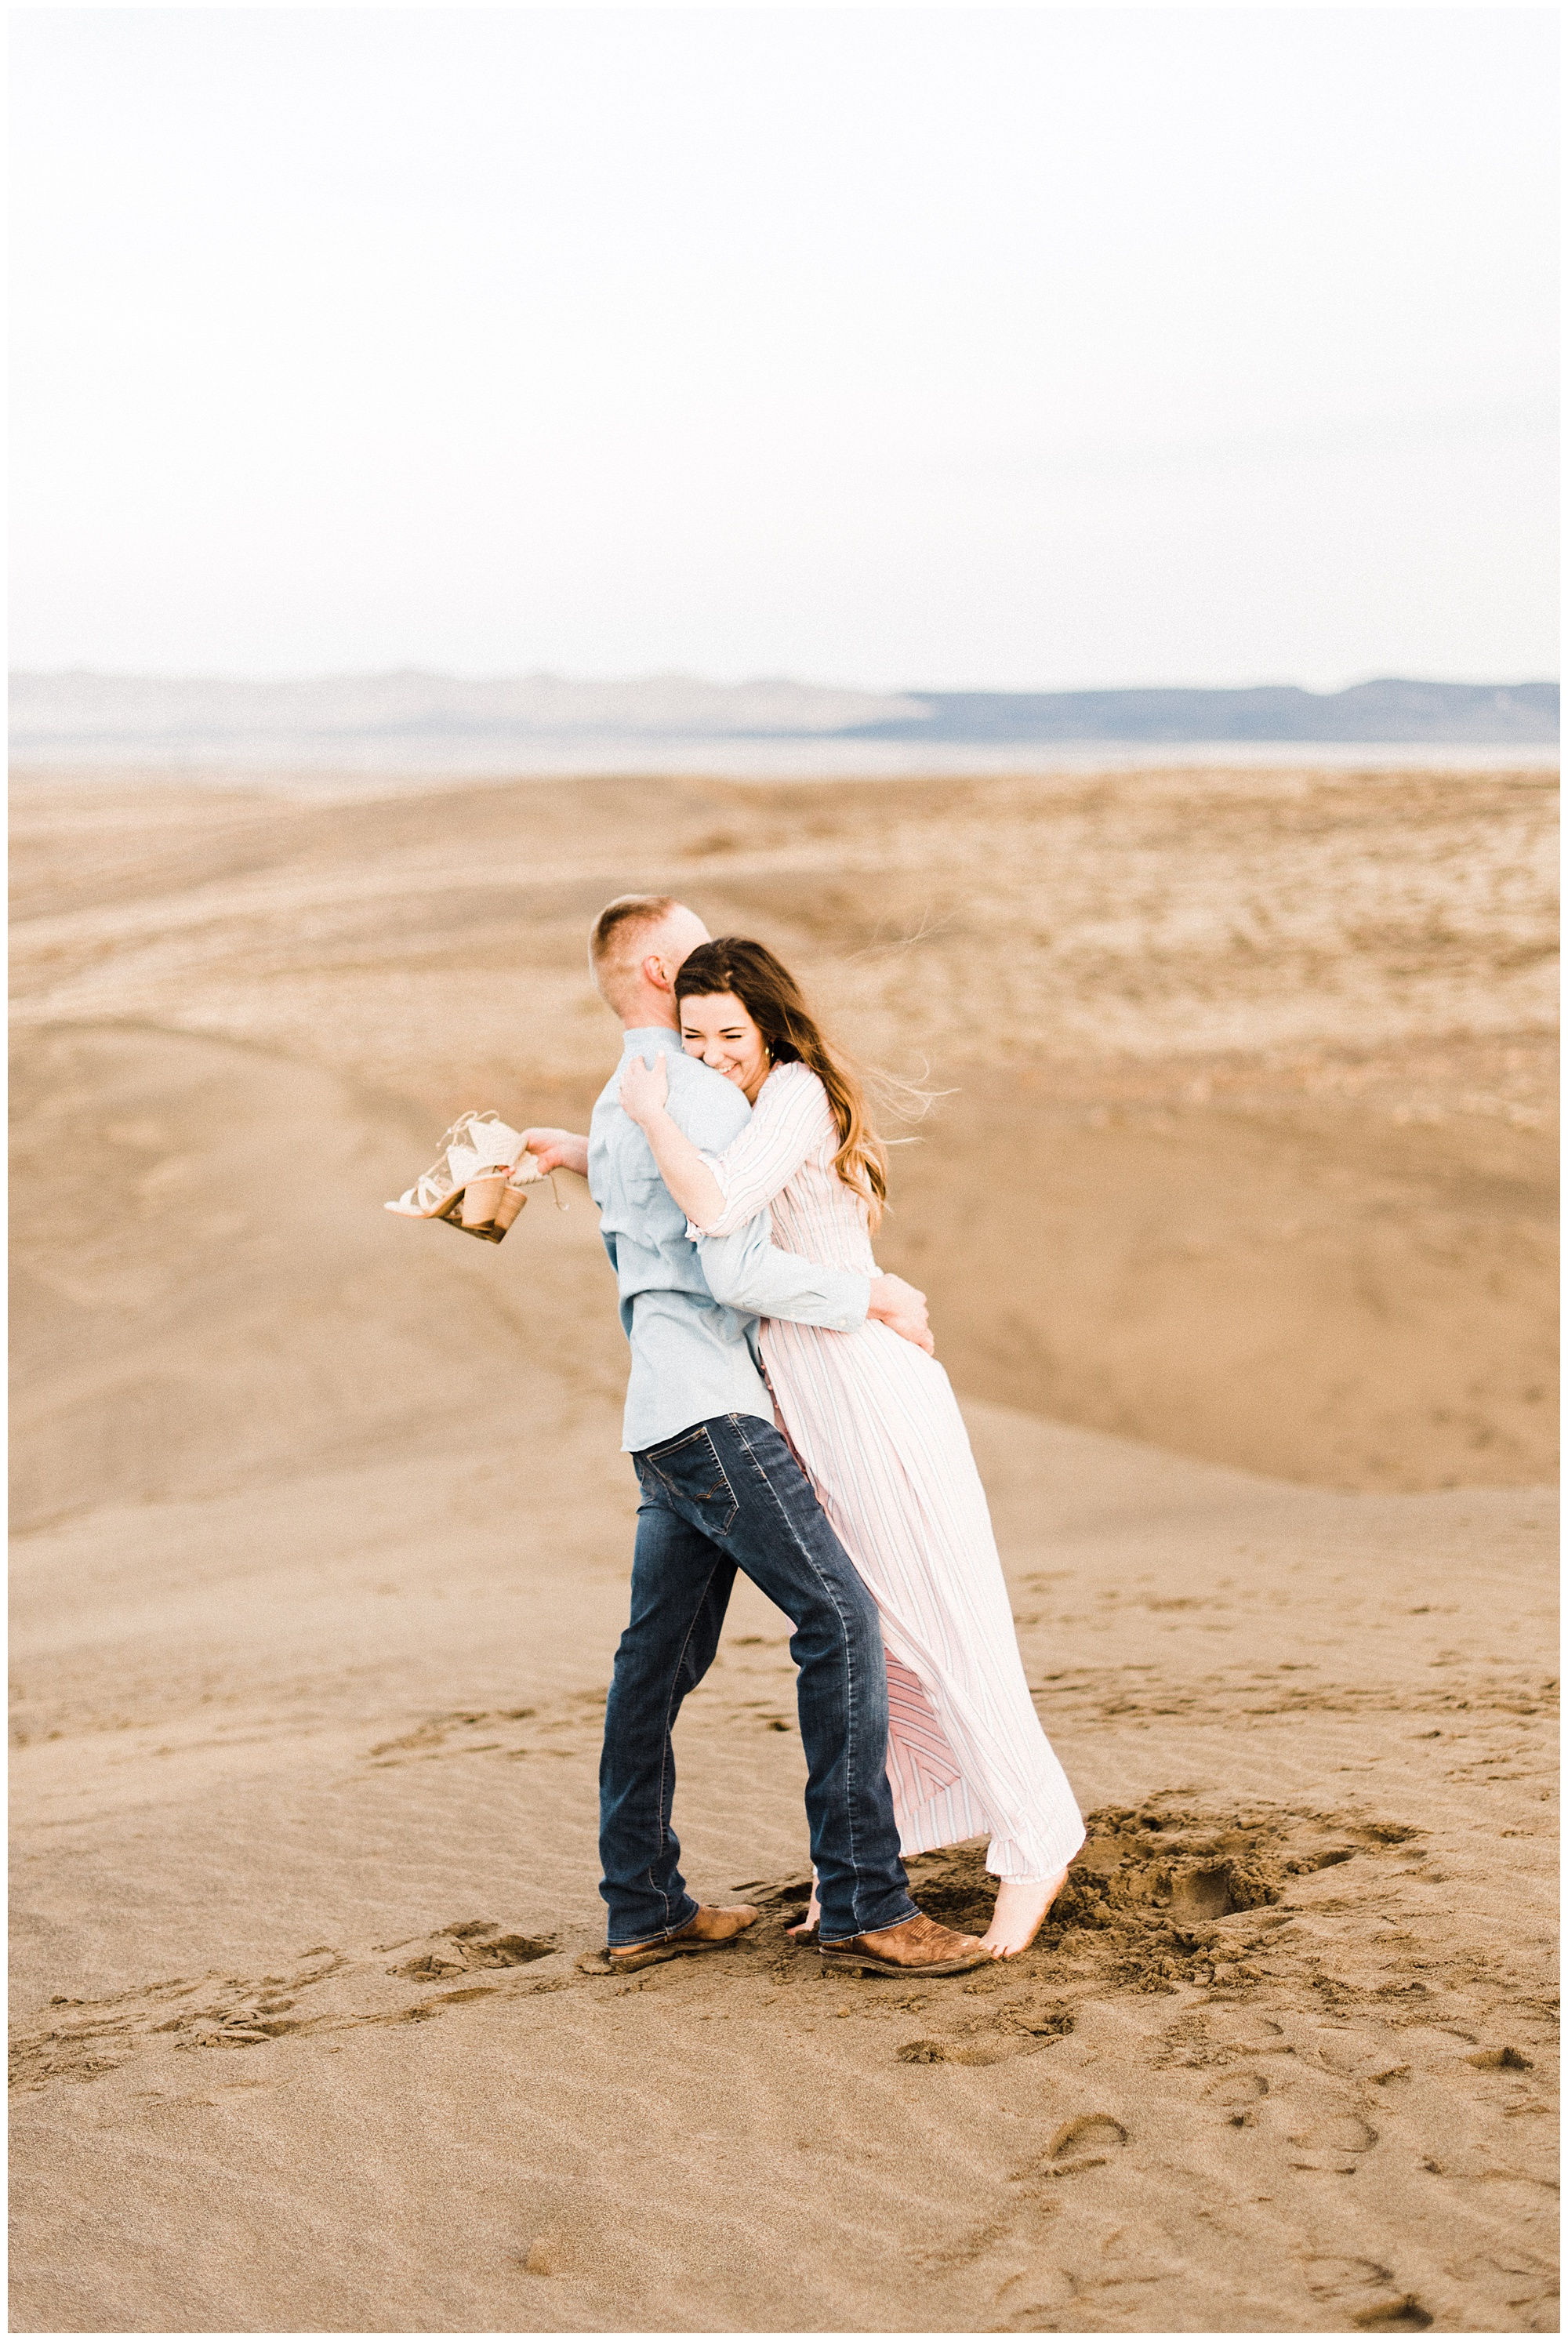 about us section photo of engaged couple on sand dunes by Laura & Devon of Forthright Photo